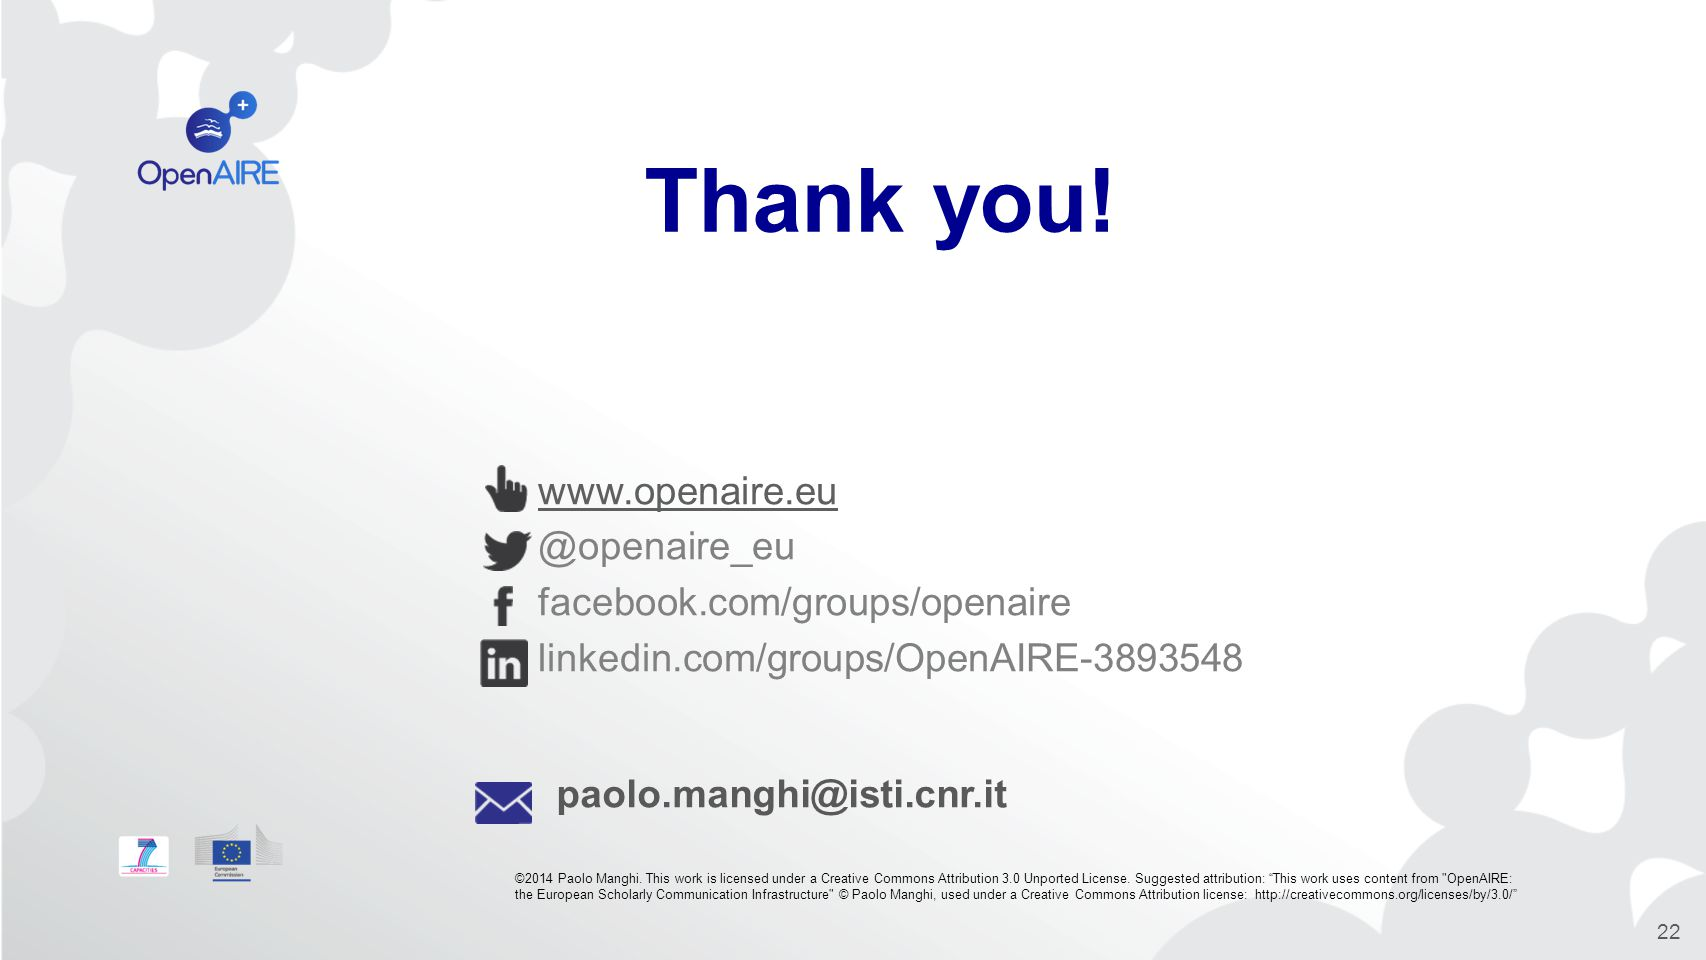 www.openaire.eu @openaire_eu facebook.com/groups/openaire linkedin.com/groups/OpenAIRE-3893548 Thank you.